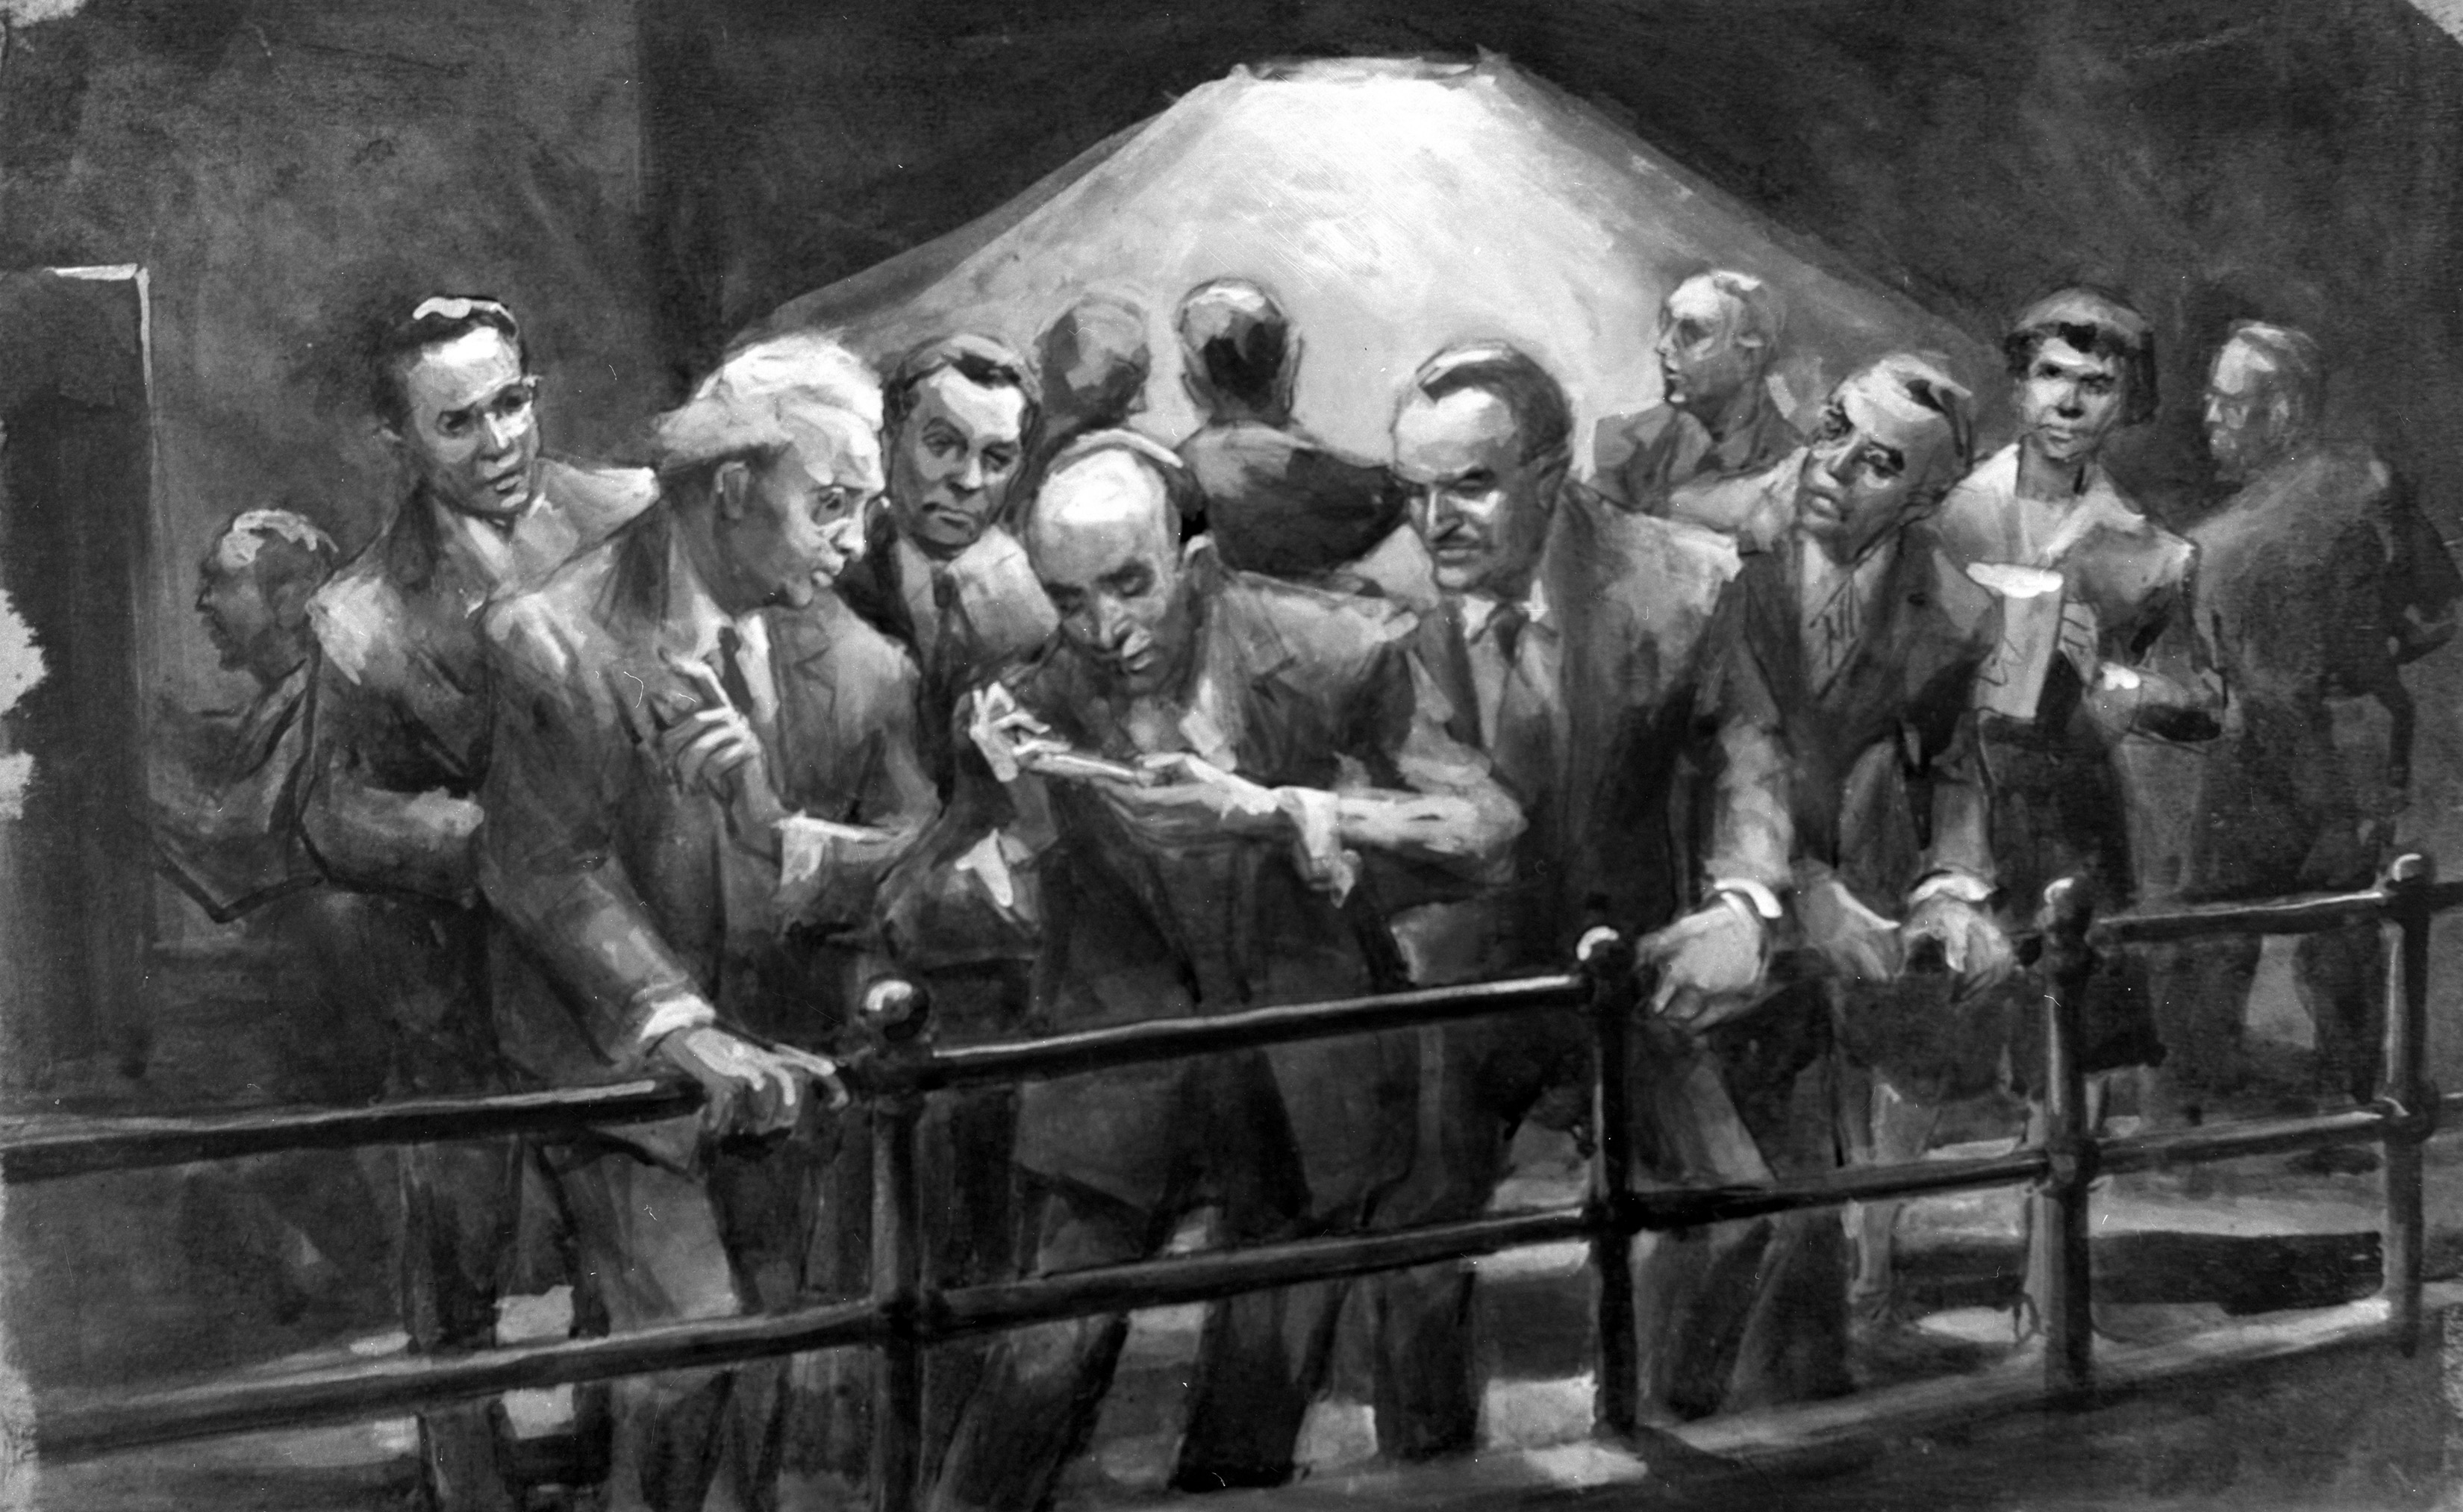 One of 24 John Cadel paintings recreating the Chicago Pile-1 going critical. Libby is second from right. Image courtesy of Argonne National Laboratory.